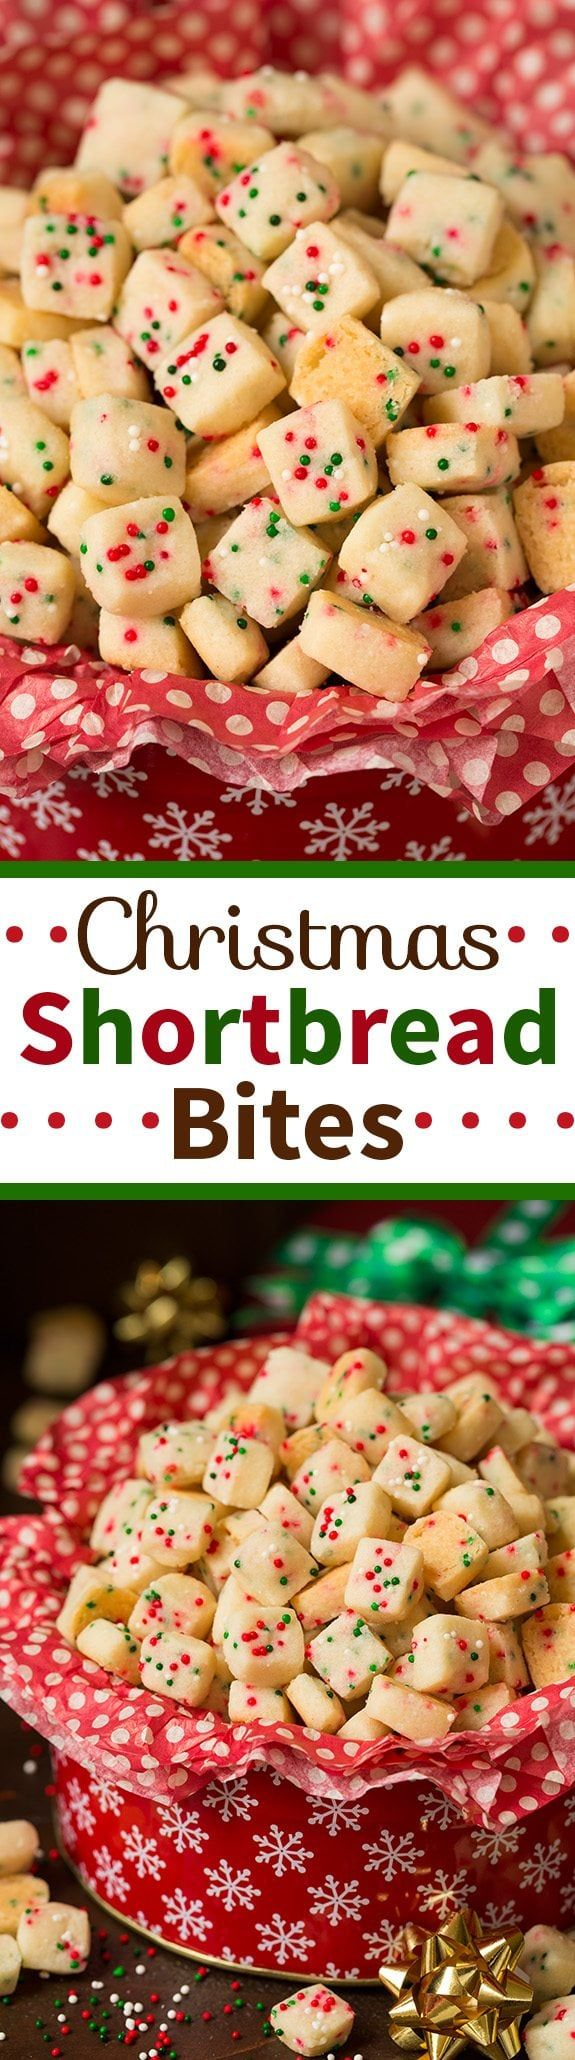 Funfetti Shortbread Bites These fun little shortbread bites are perfect for the holidays Made with Christmas sprinkles they make great gifts or snacks for parties